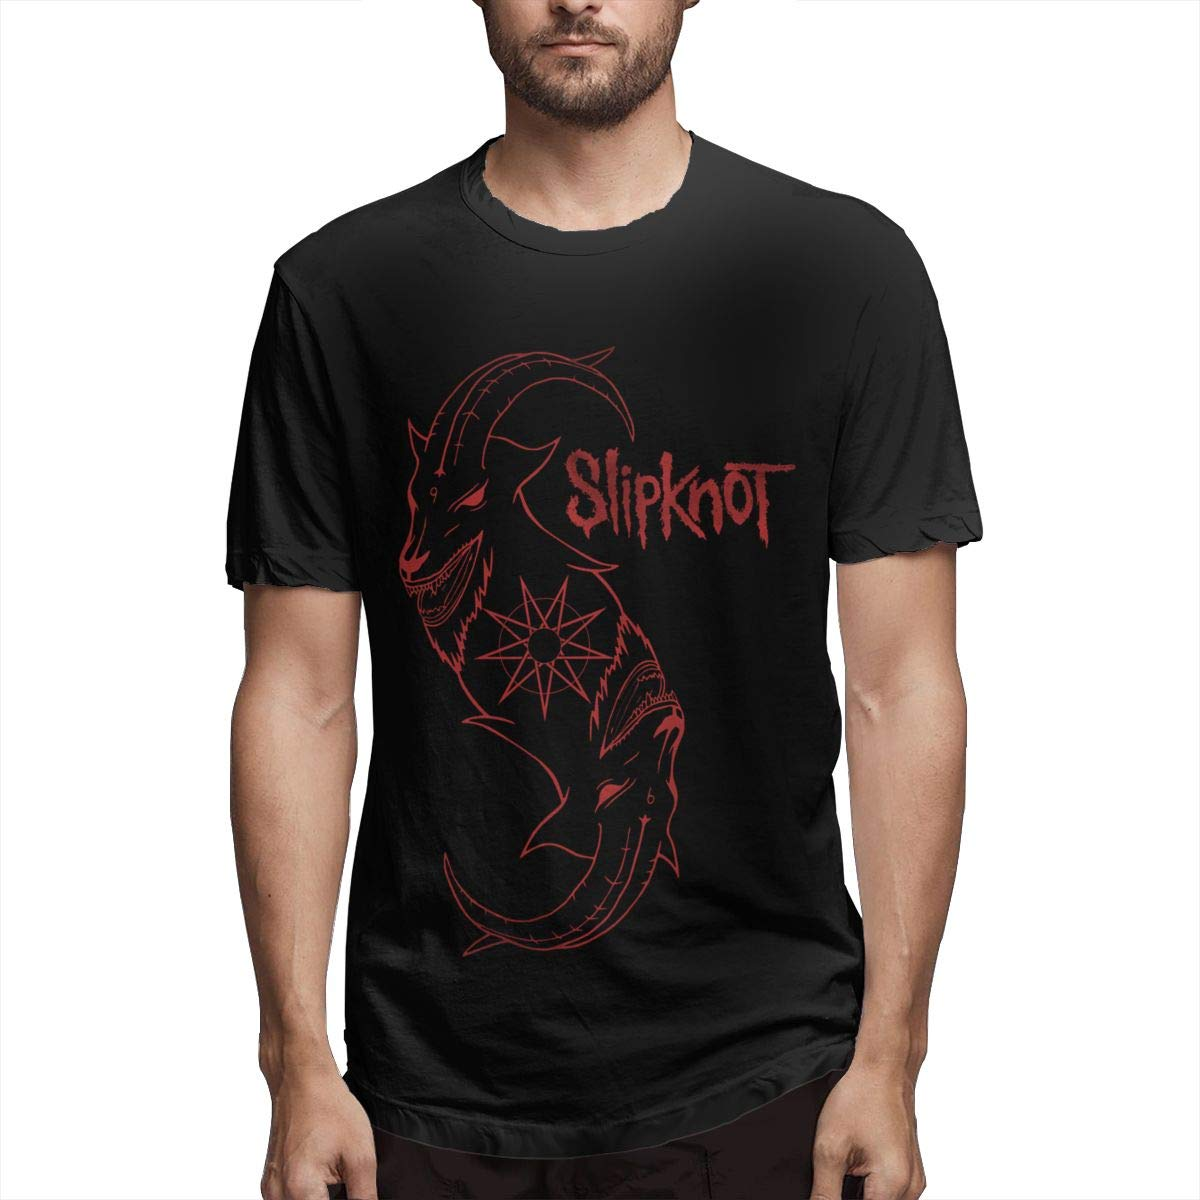 Smooffly S Slipknot Print Casual Crew Neck Short Sleeves T Shirts